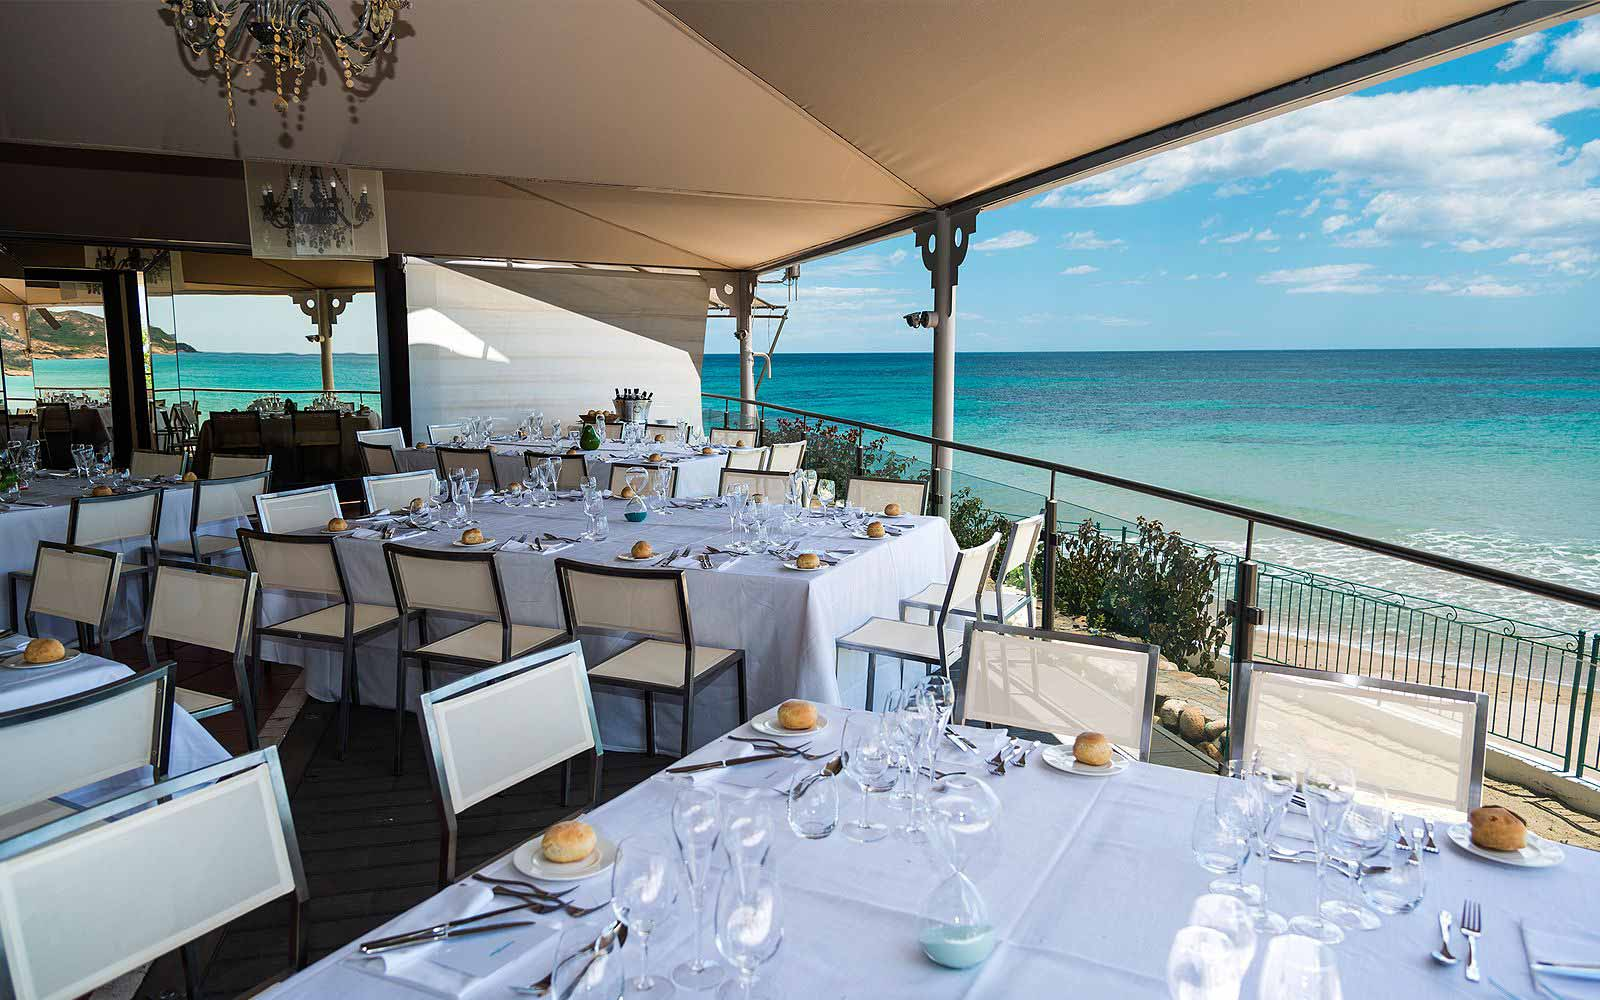 Gordon Ramsay Restaurant at the Forte Village Resort